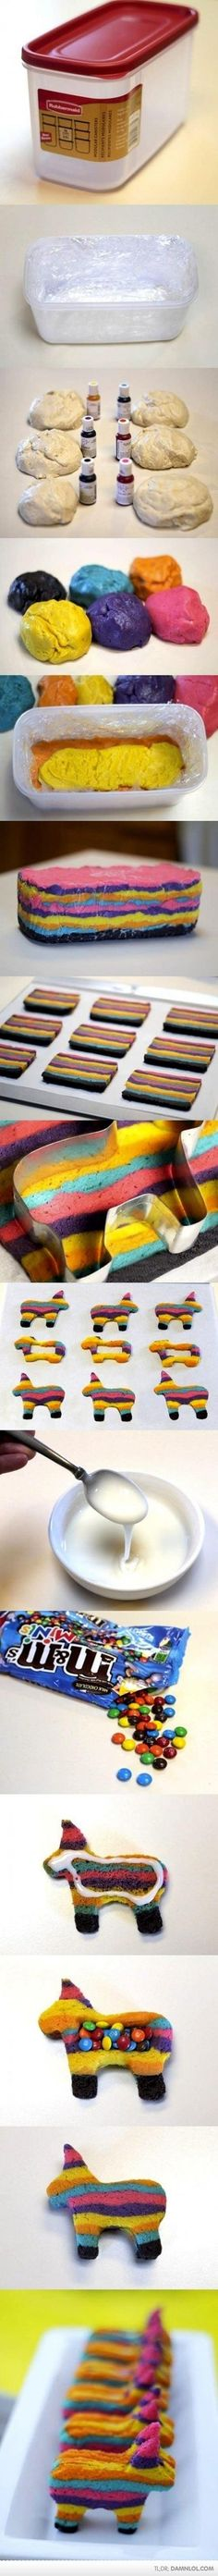 you could do so many different colors and cutters for different holidays. LOVE this idea